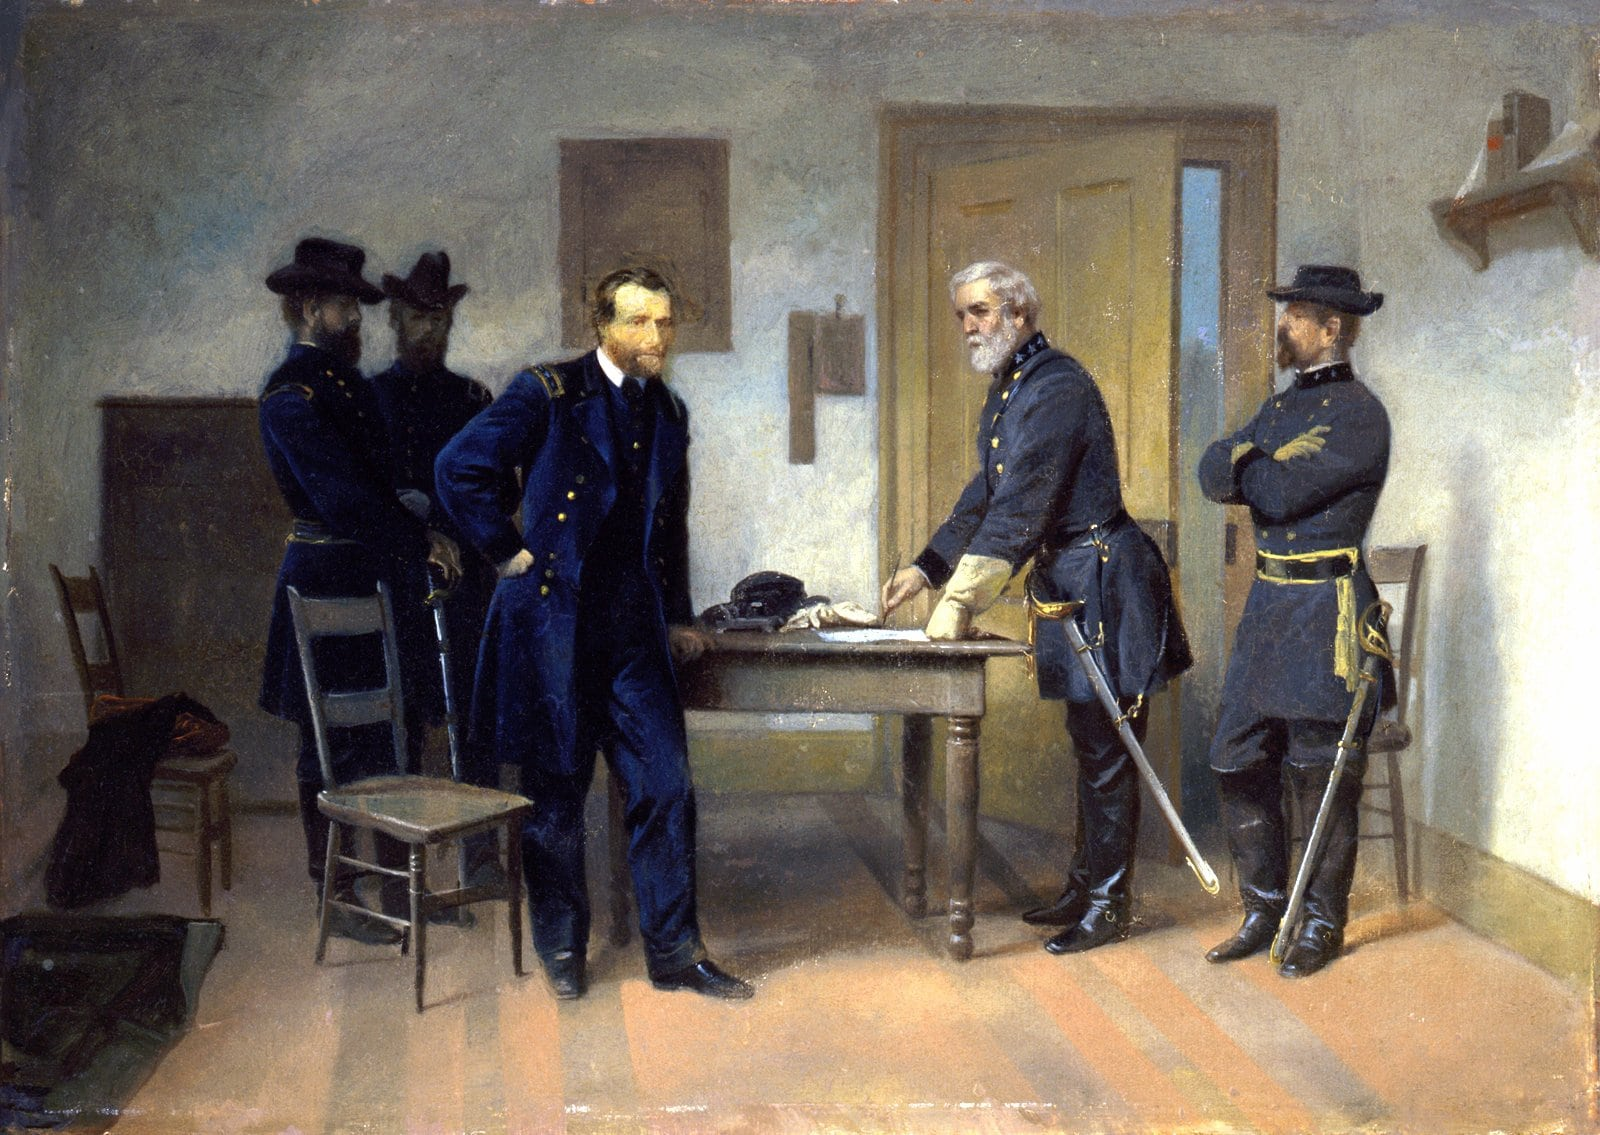 Appomattox Court House - Grant and Lee - End of the Civil War